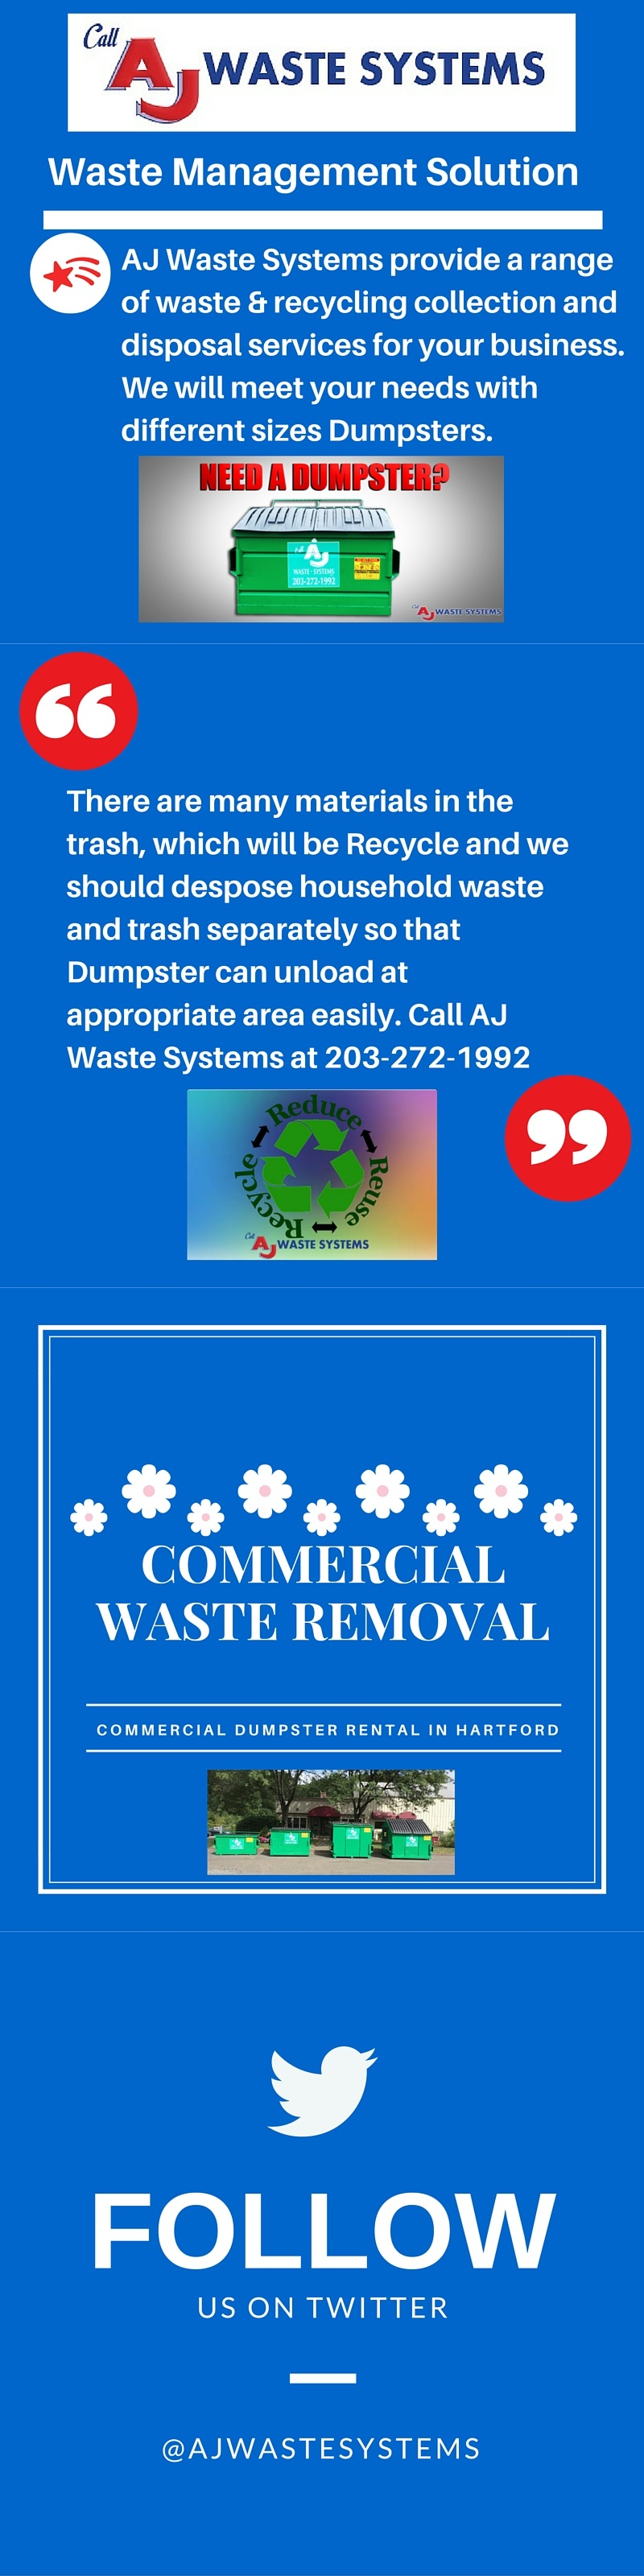 Pin by AJ Waste Systems on Commercial Waste Services